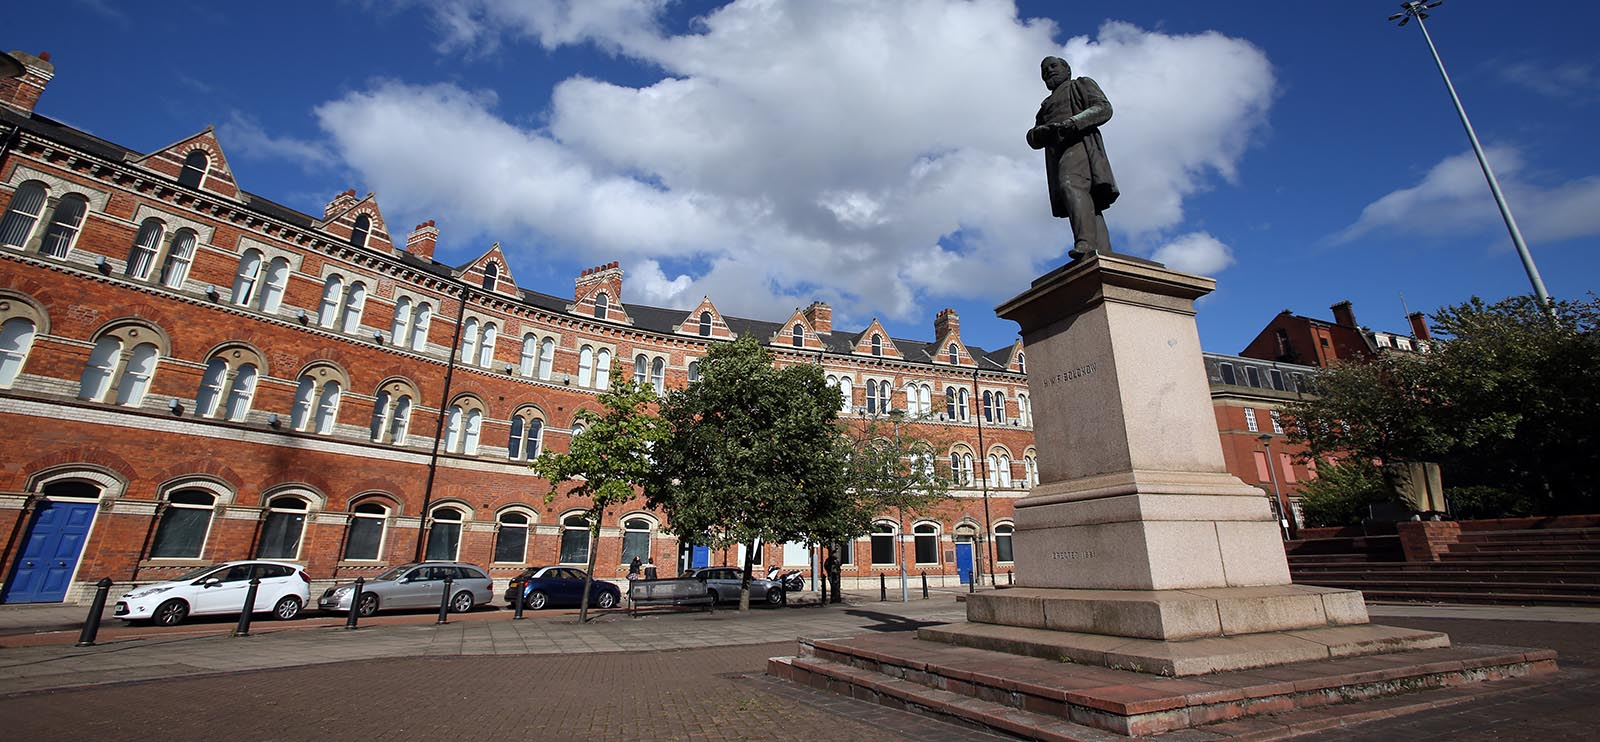 Middlesbrough ranks 3rd best place in UK for startups